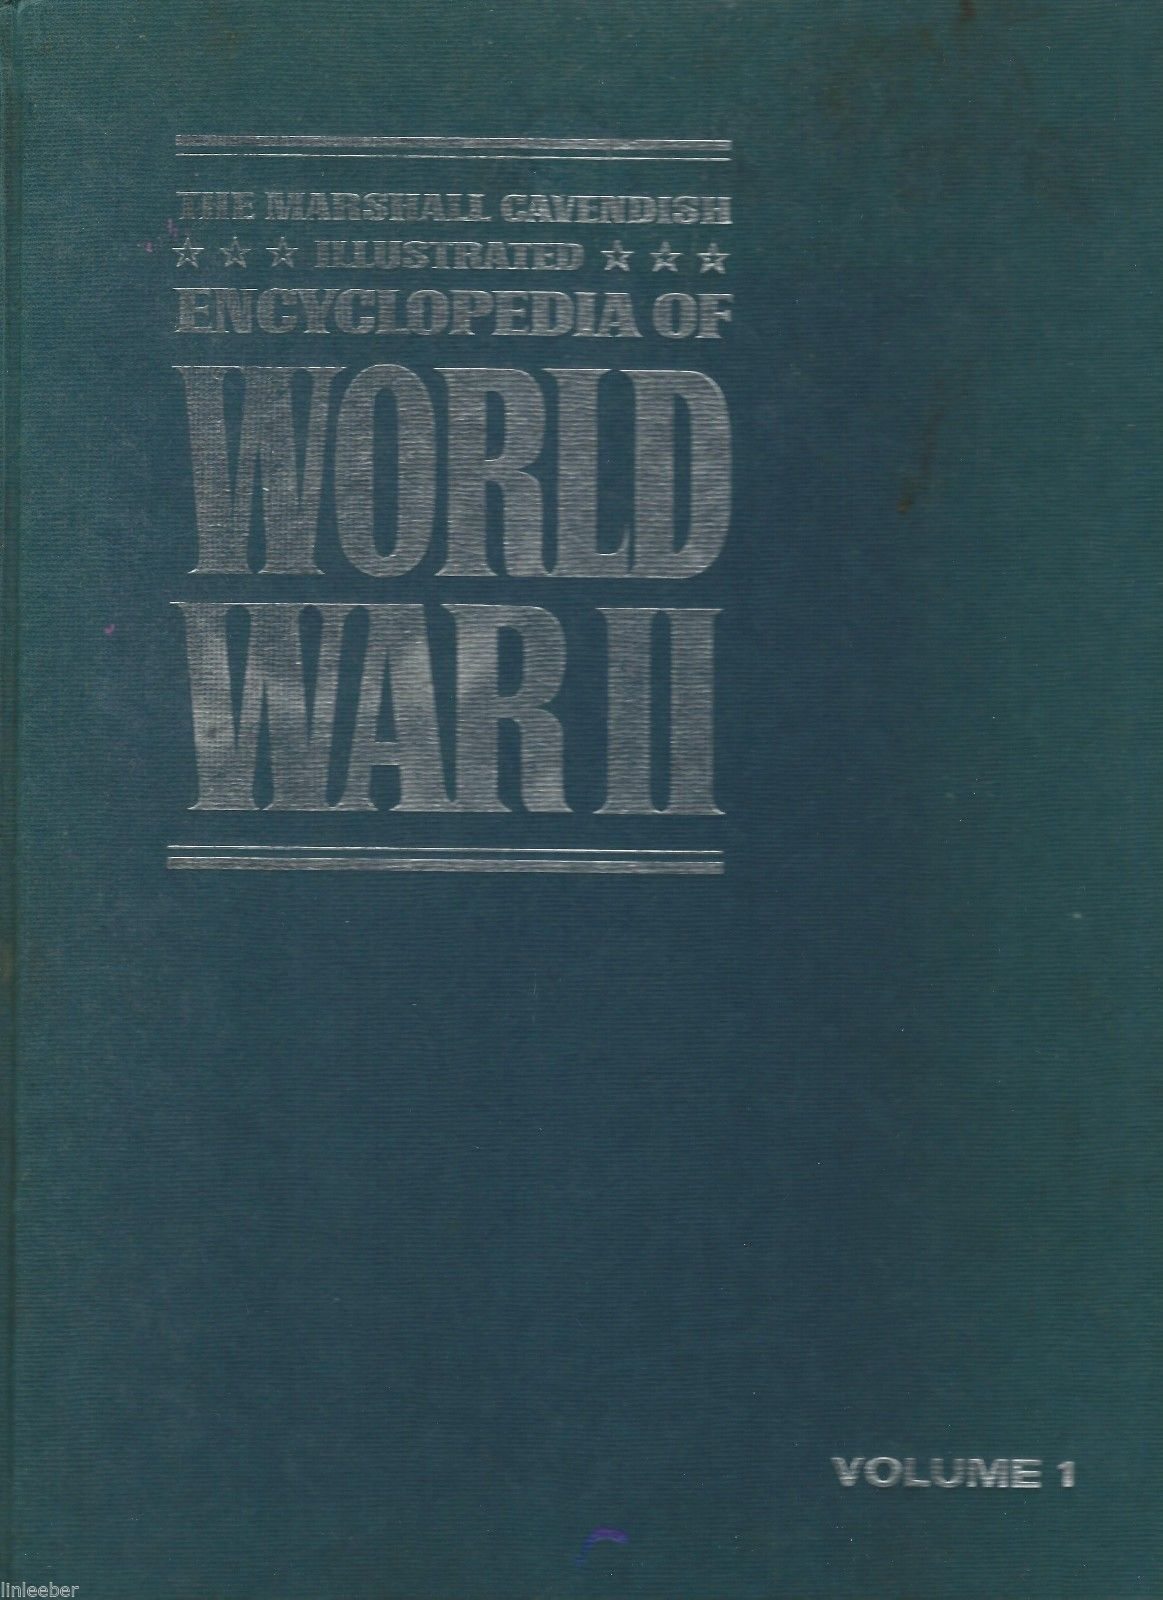 THE MARSHALL CAVENDISH ILLUSTRATED ENCYCLOPEDIA OF WWII Vol.1;Hitler's War-1936-